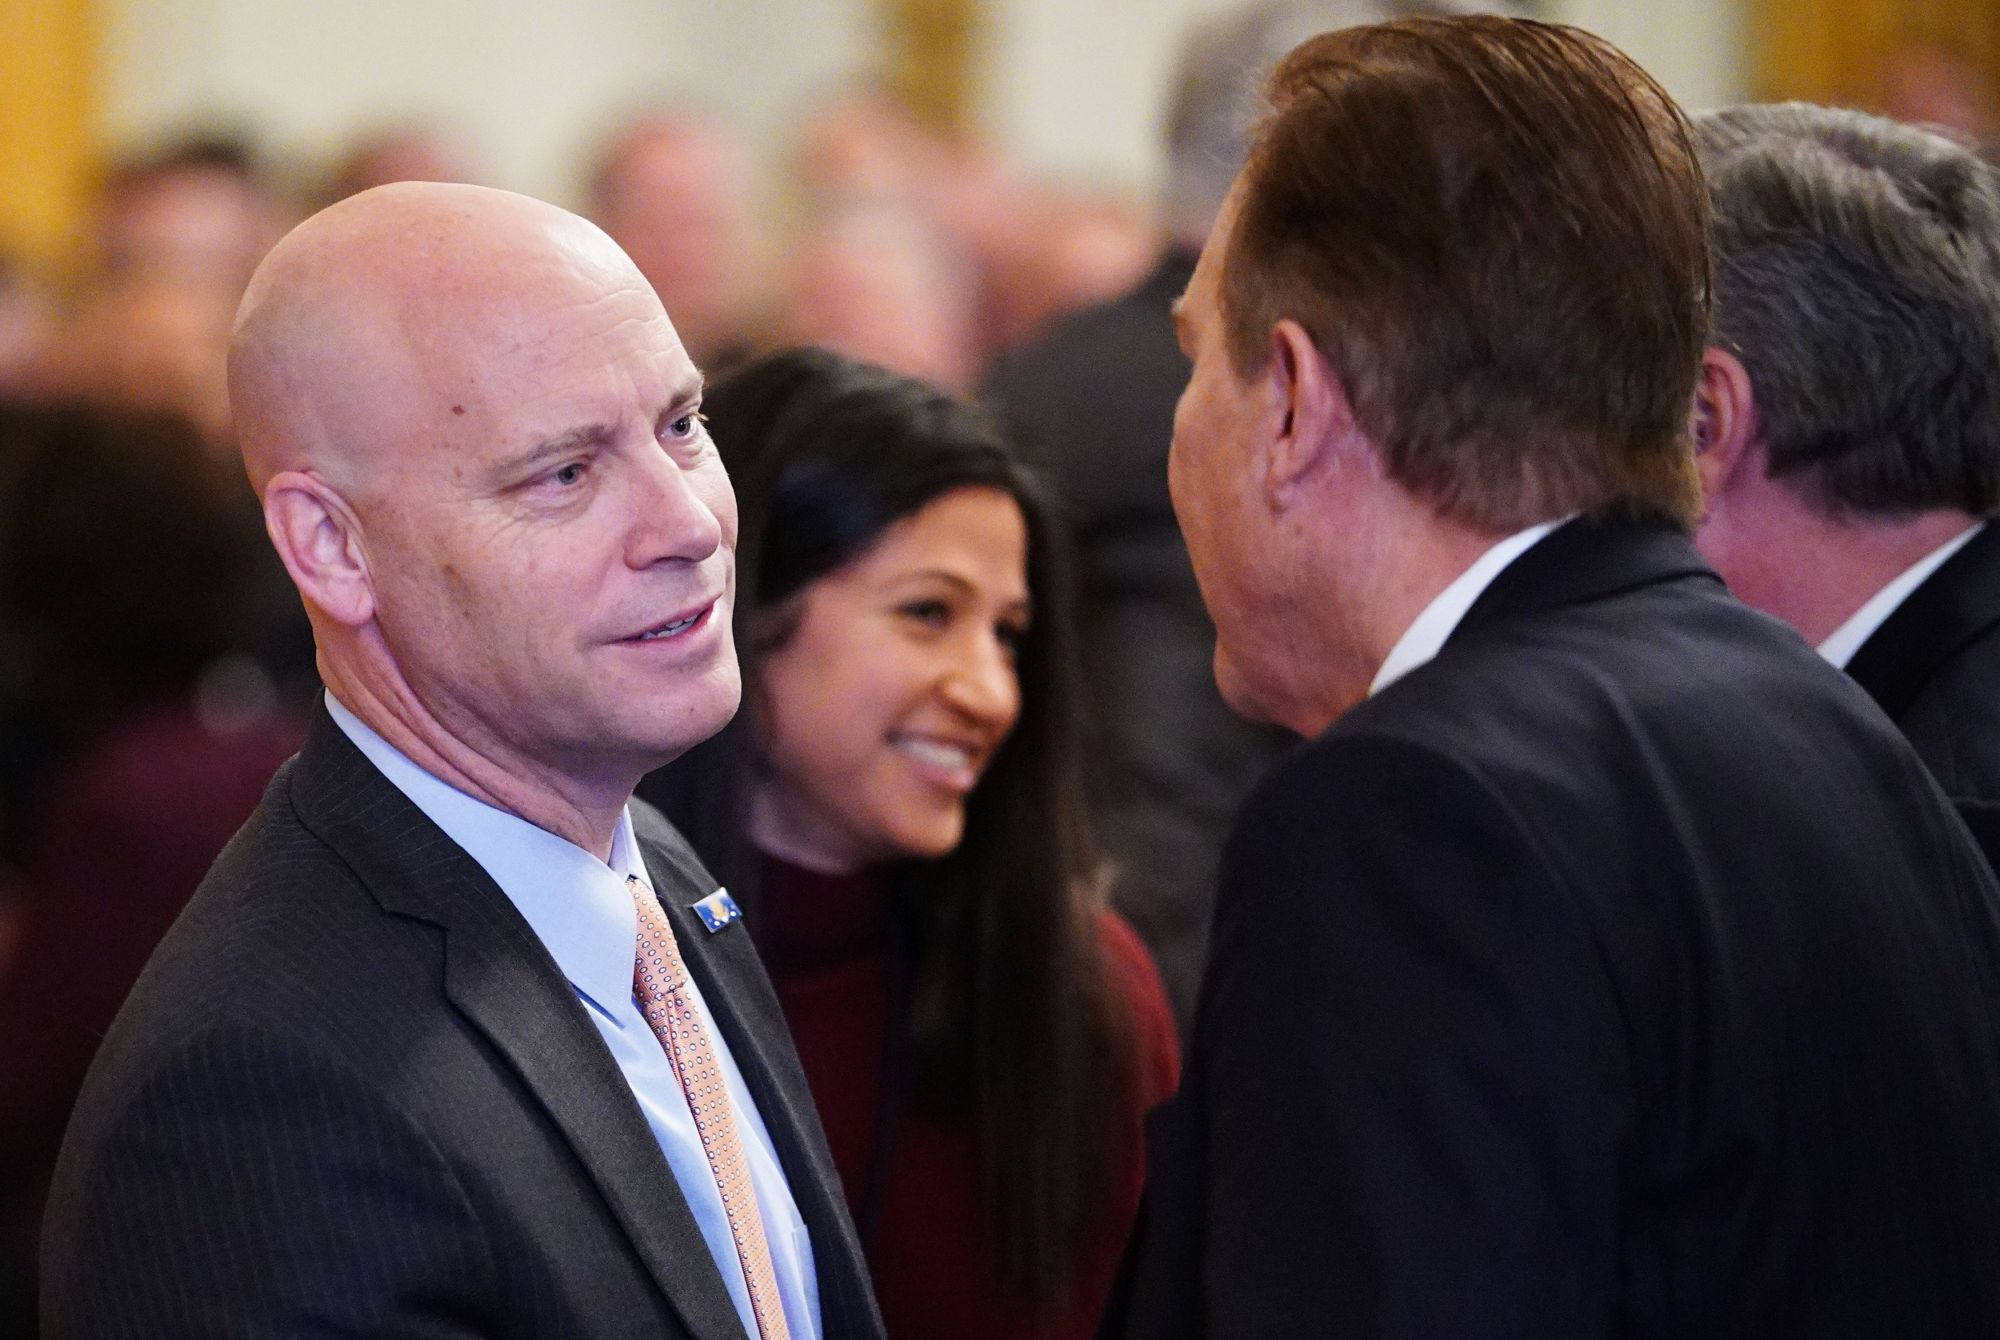 Chief of Staff to the Vice President Marc Short (L) is seen before the signing of a trade agreement between the U.S. and China during a ceremony in the East Room of the White House in Washington, D.C. on Jan. 15, 2020. (MANDEL NGAN / AFP via Getty Images)